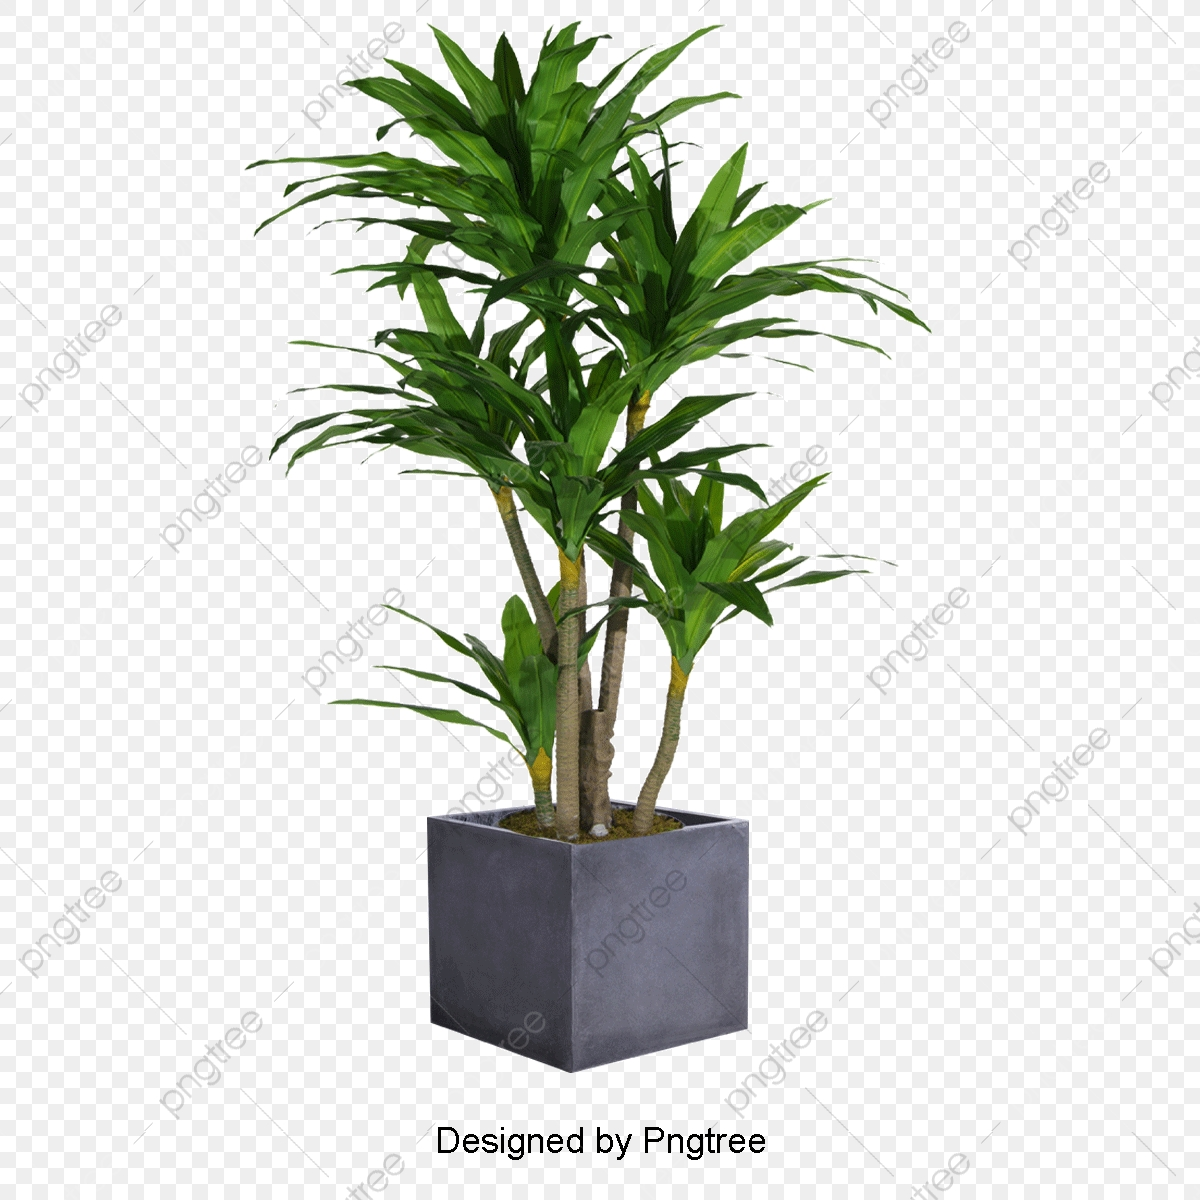 Plant Png Vector Psd And Clipart With Transparent Background For Free Download Pngtree